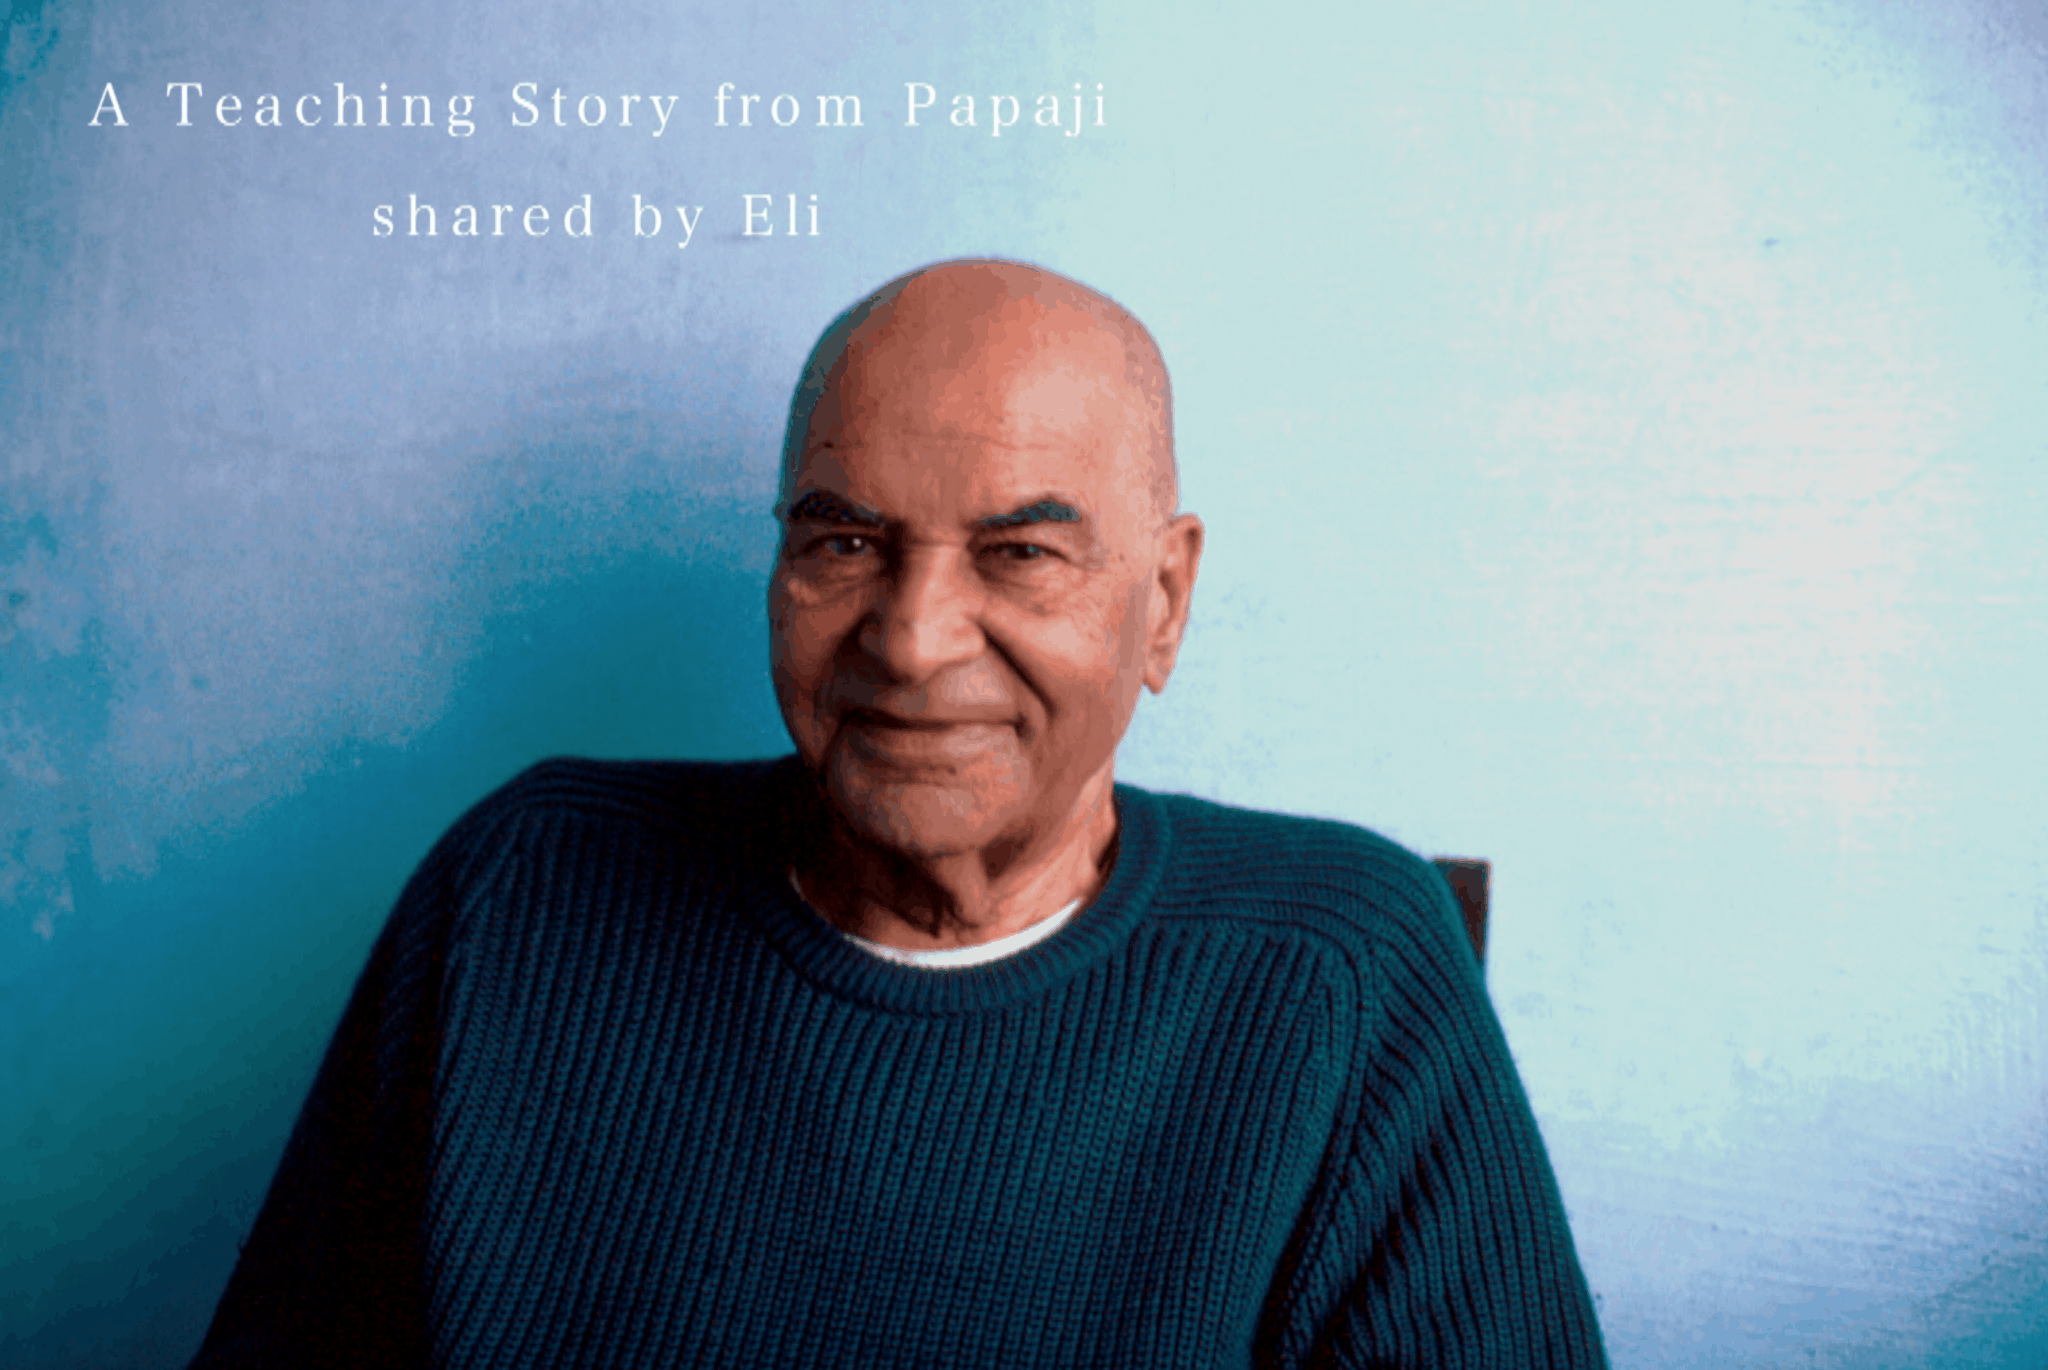 The Wave and the Ocean: Eli Sharing a Papaji teaching story